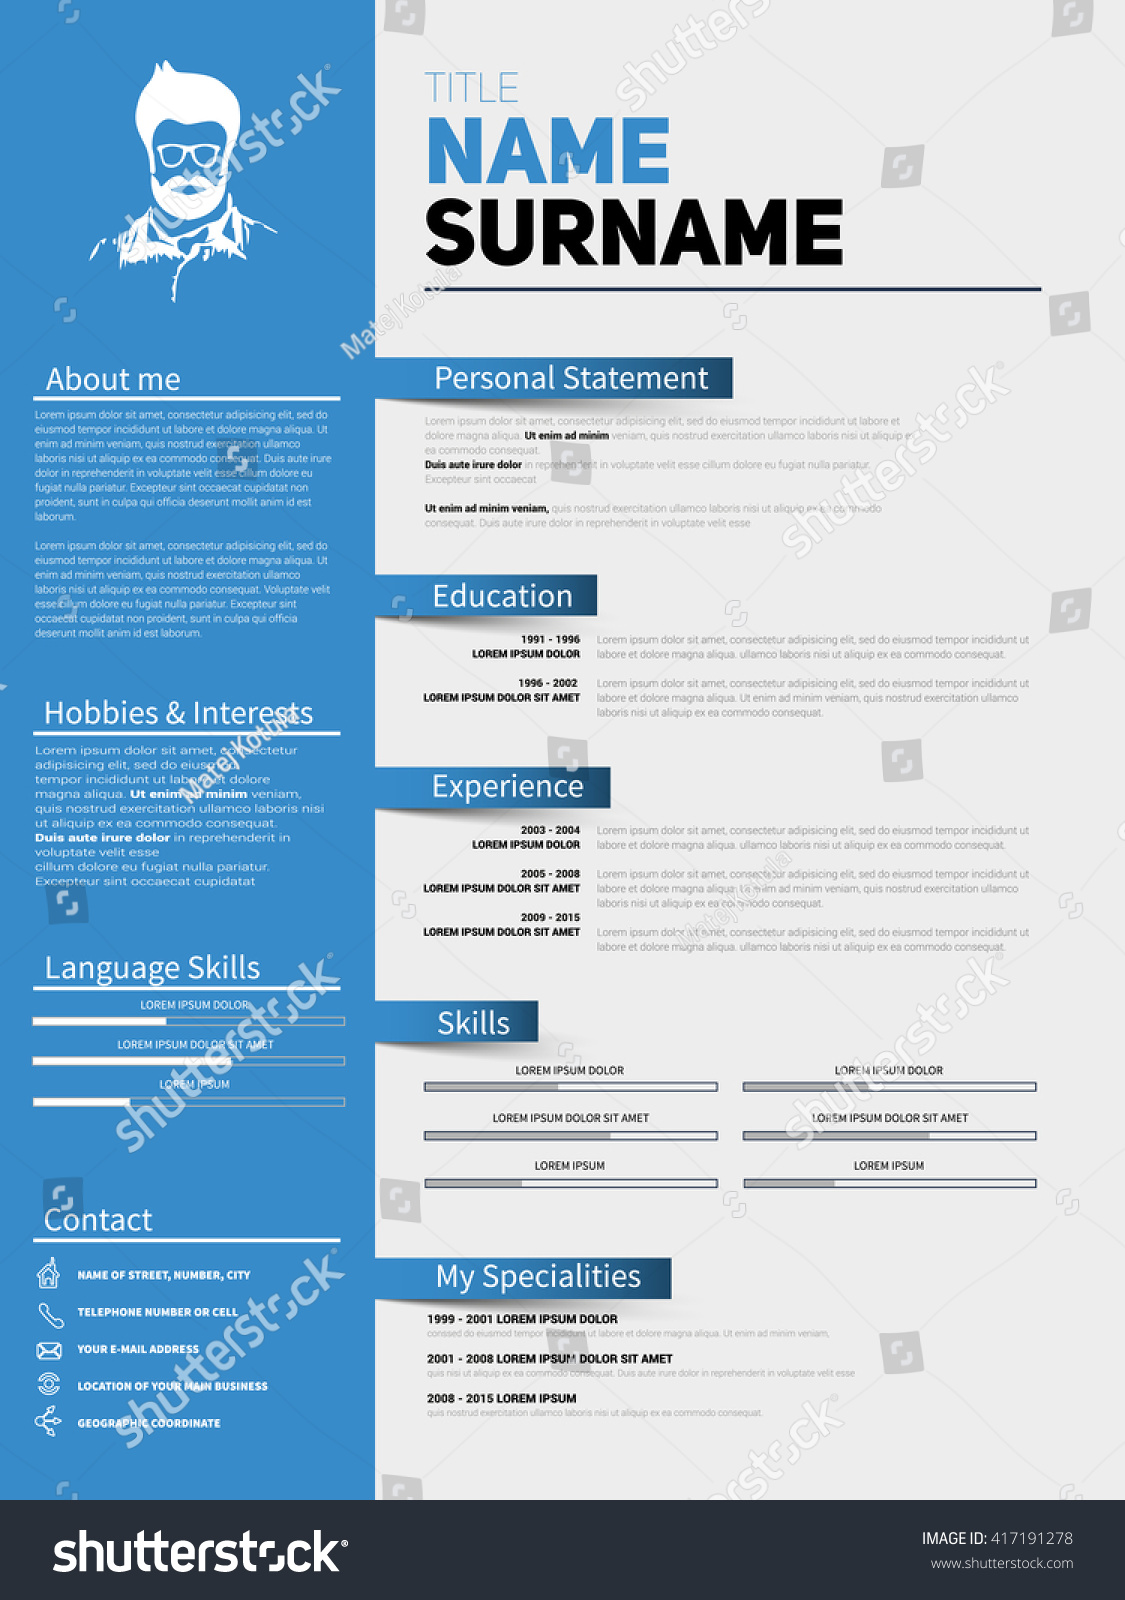 examples of an awesome resume profesional resume for job examples of an awesome resume cover letter and resume samples by industry monster stock vector resume